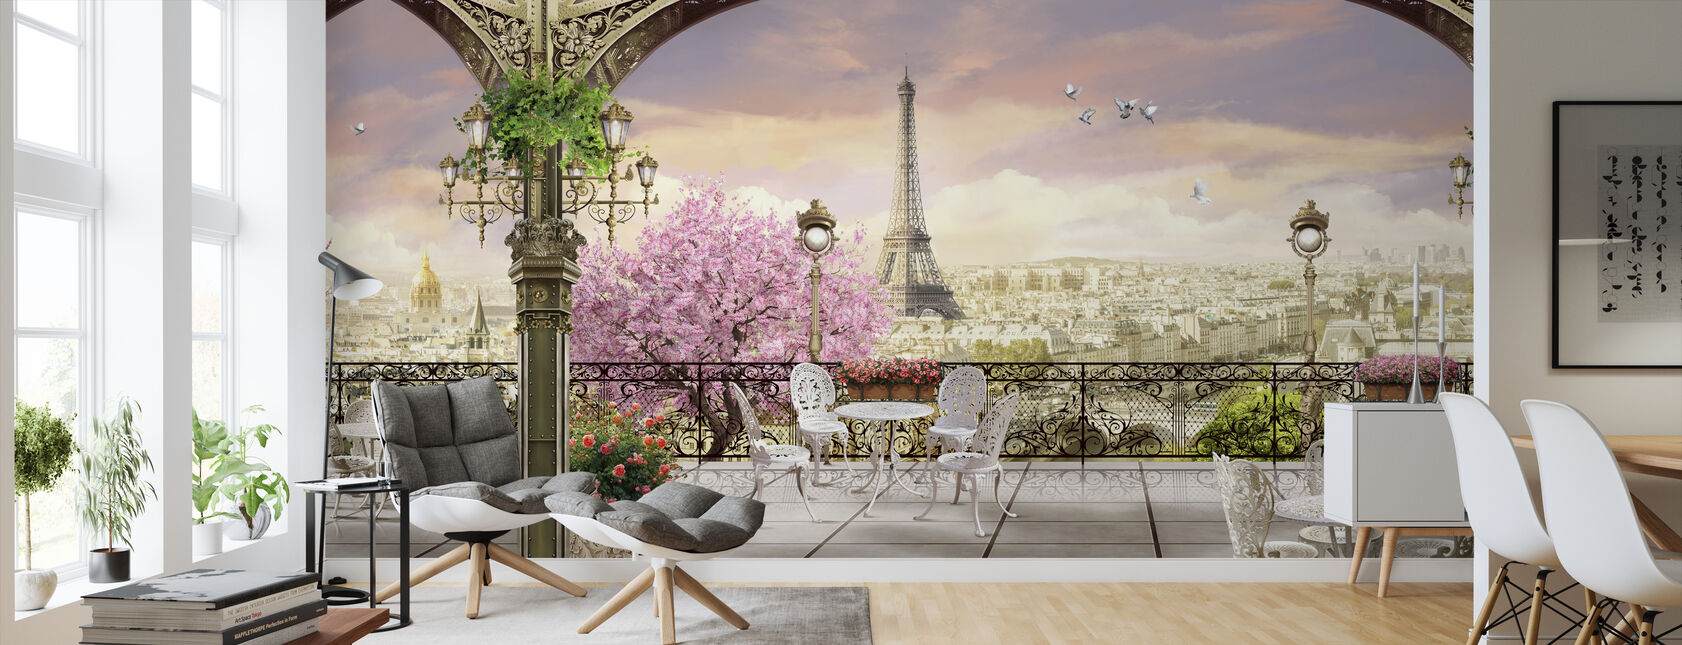 Paris Terrace - Wallpaper - Living Room